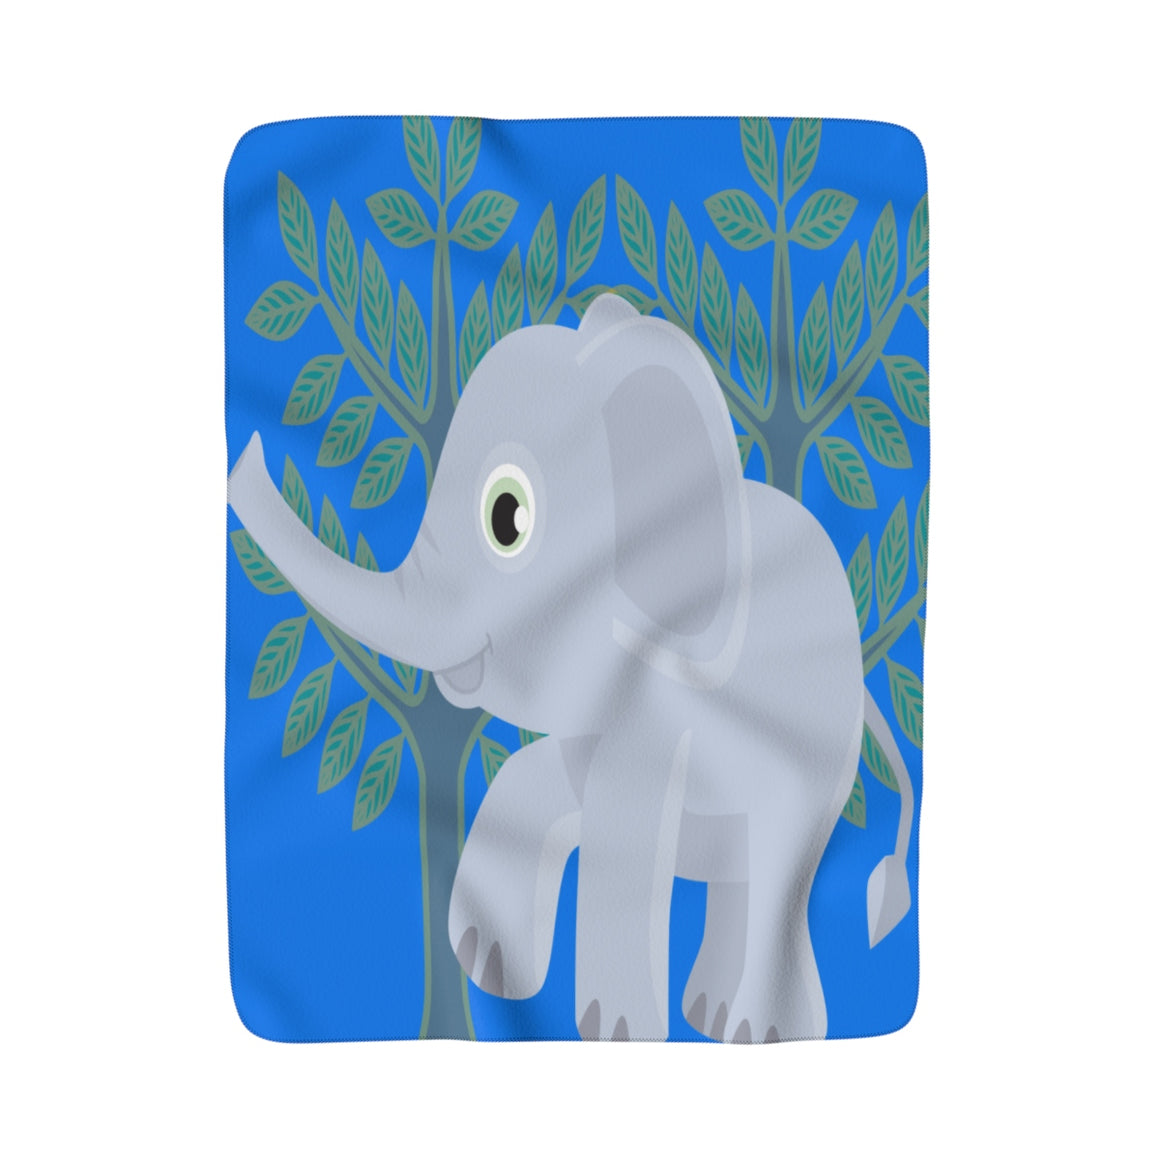 My Fabulous Style Elephant Fun  Sherpa Fleece Blanket-Luxurious Fleece Blanket